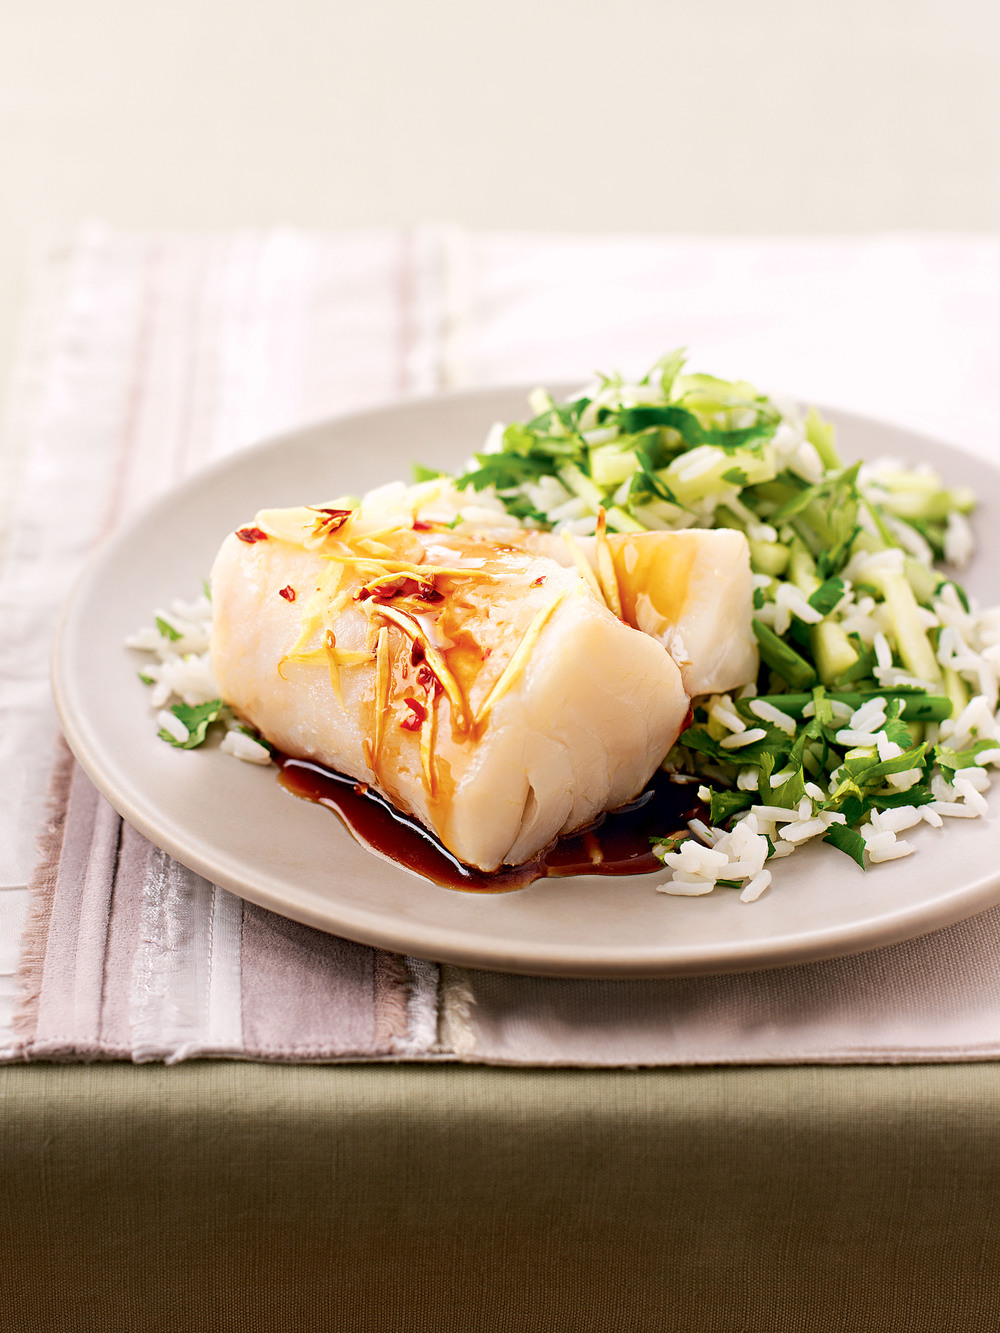 Oven steamed fish with greens recipe for Steam fish in oven